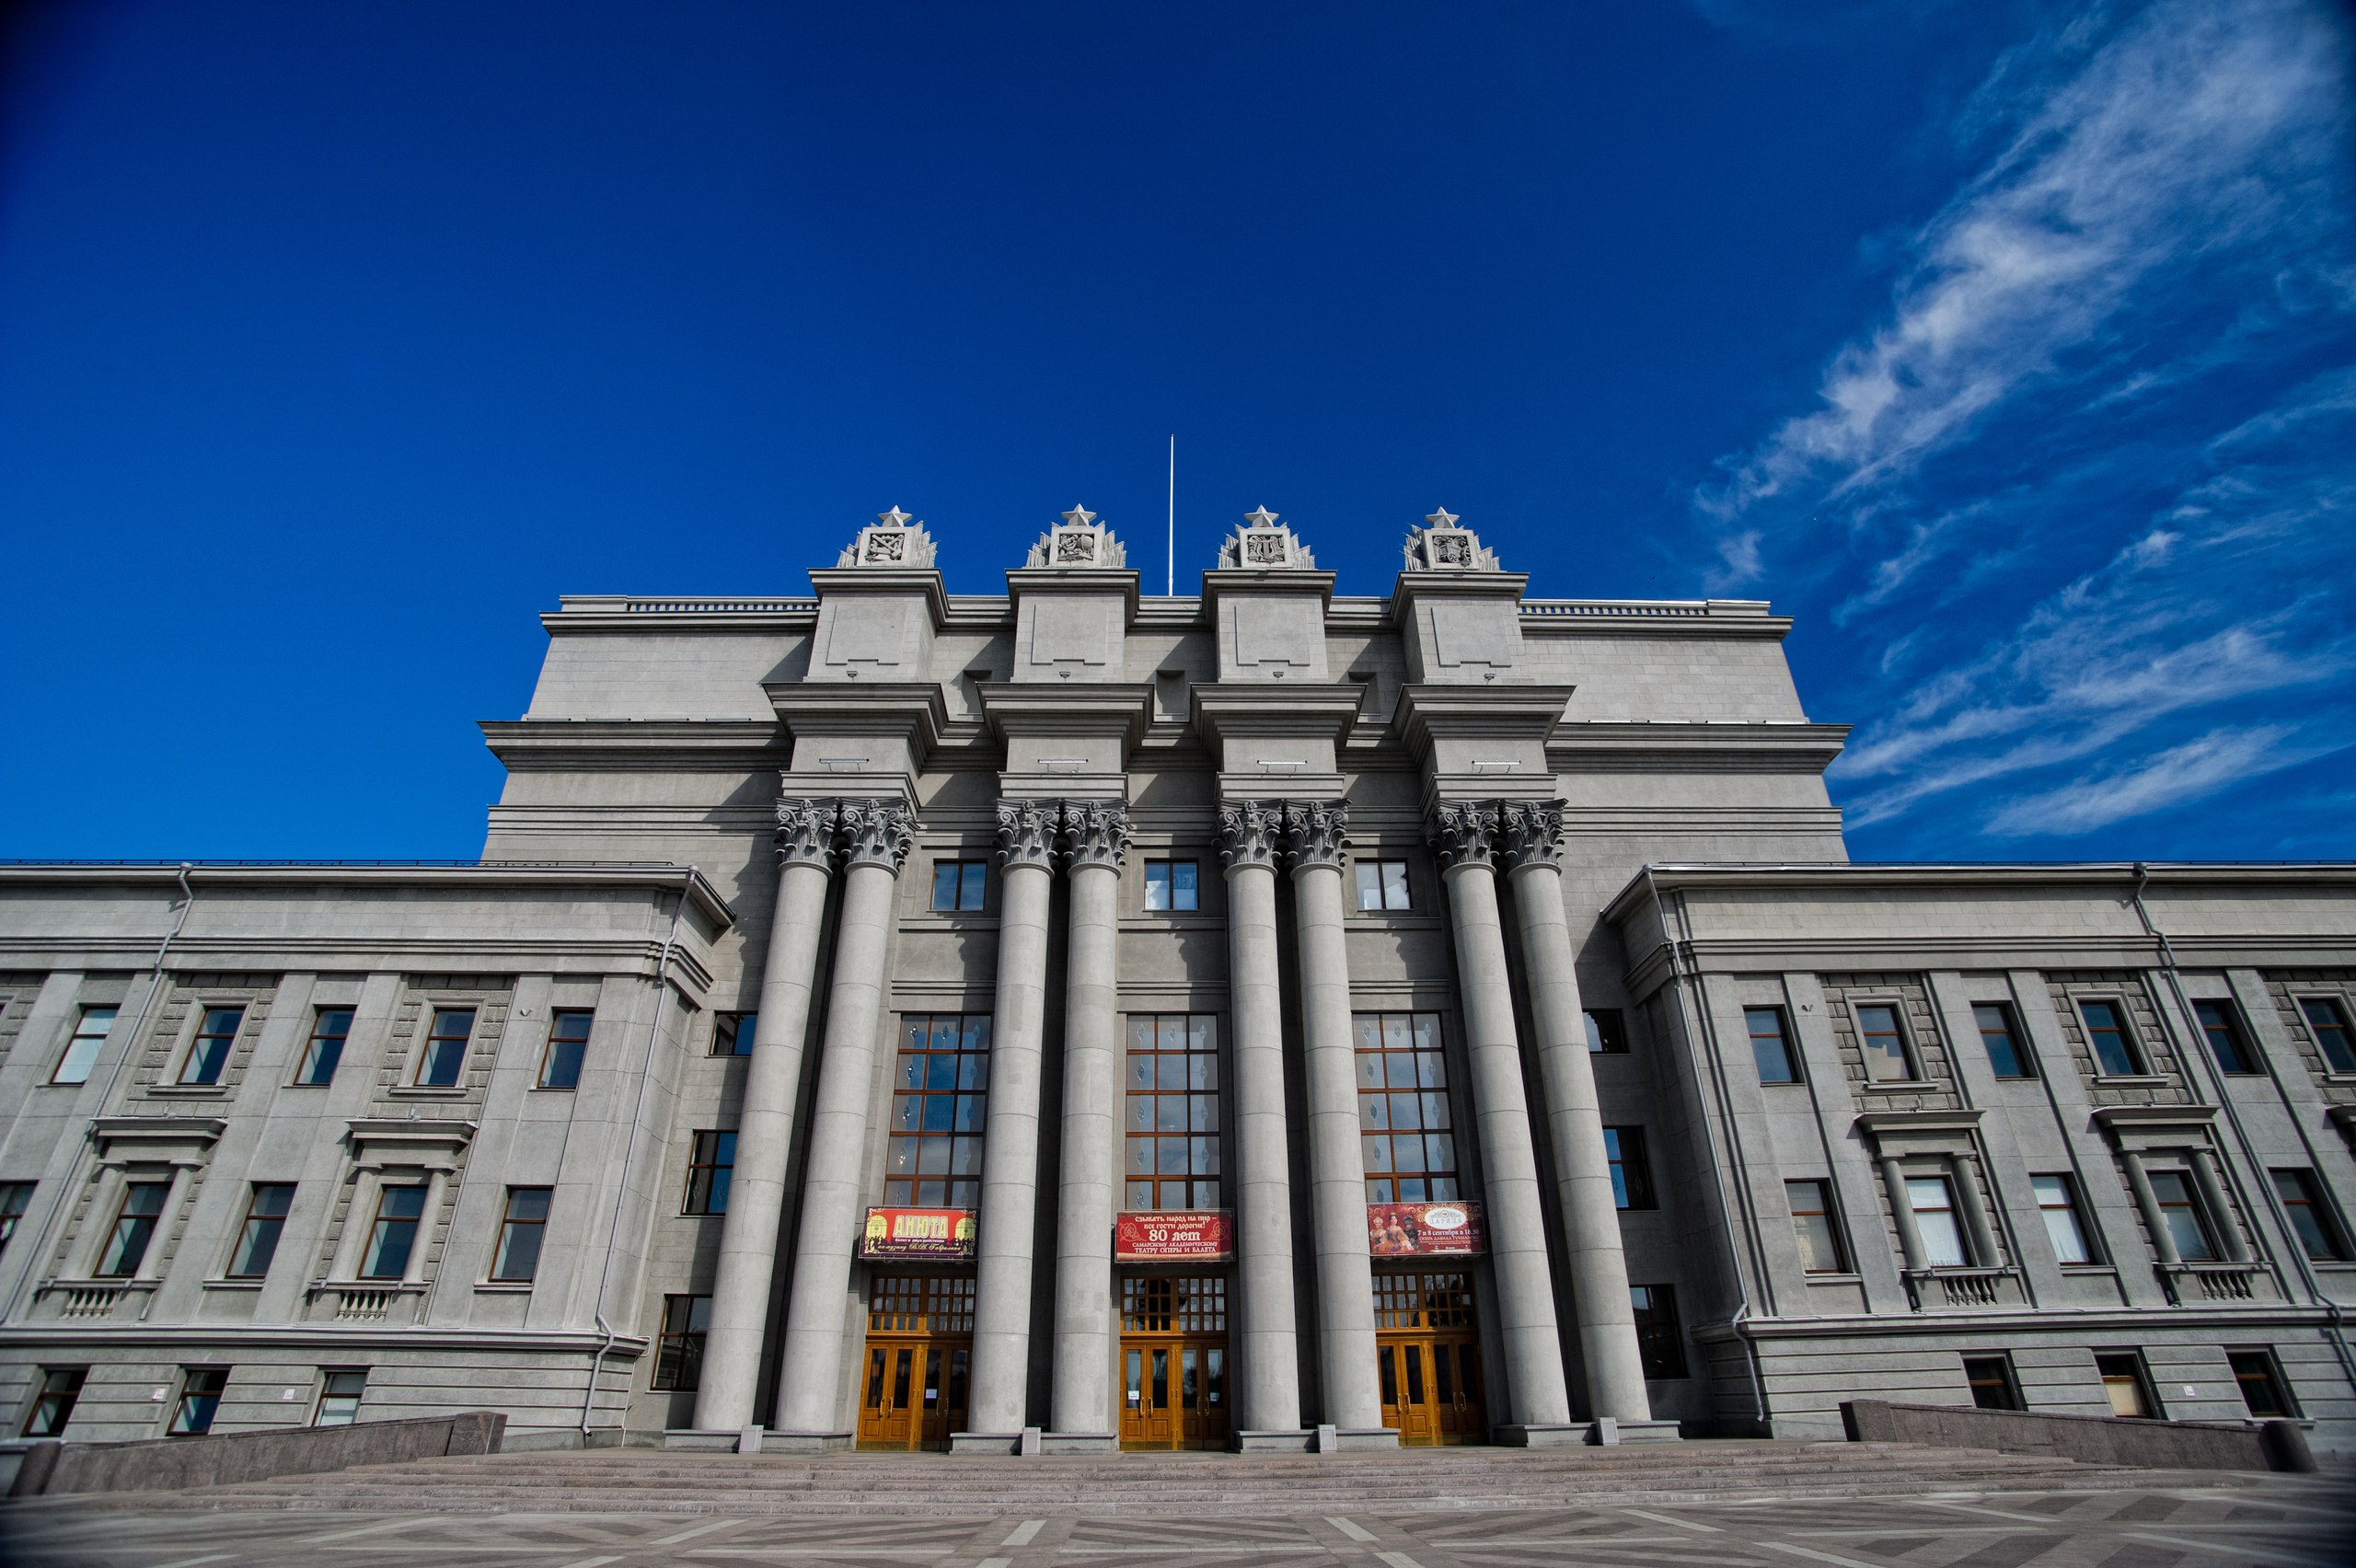 Academic Opera and Ballet Theatre in Samara, Russia